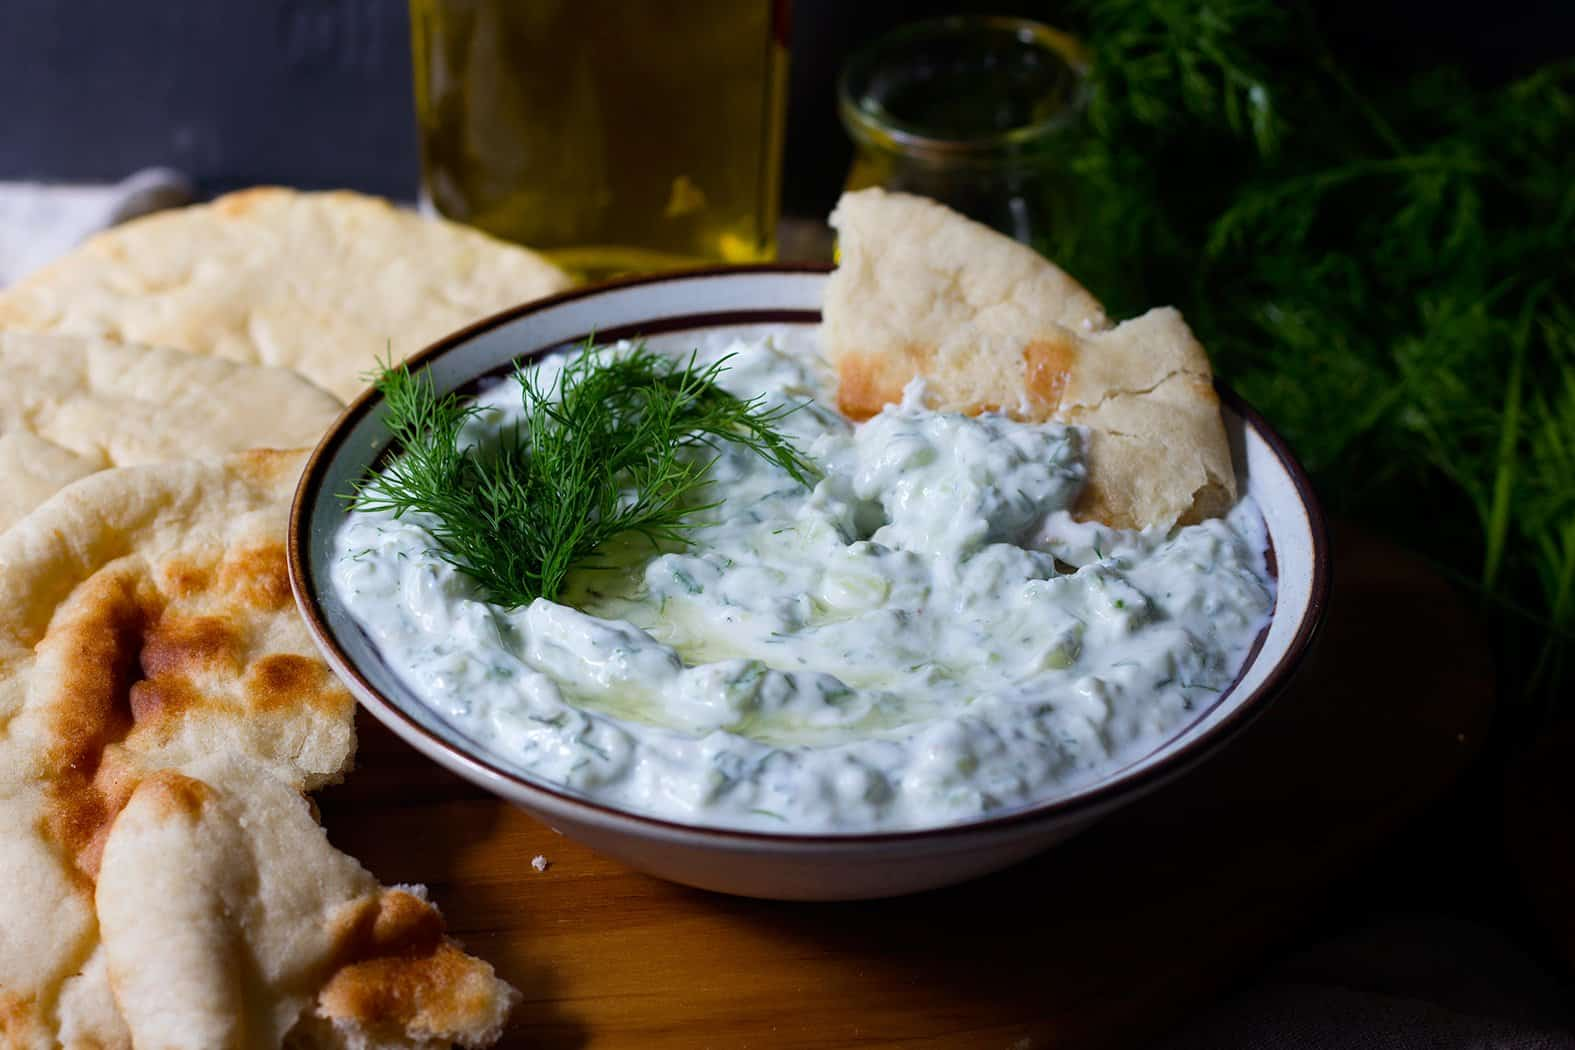 Greek Tzatziki sauce is served in a bowl with pita bread.